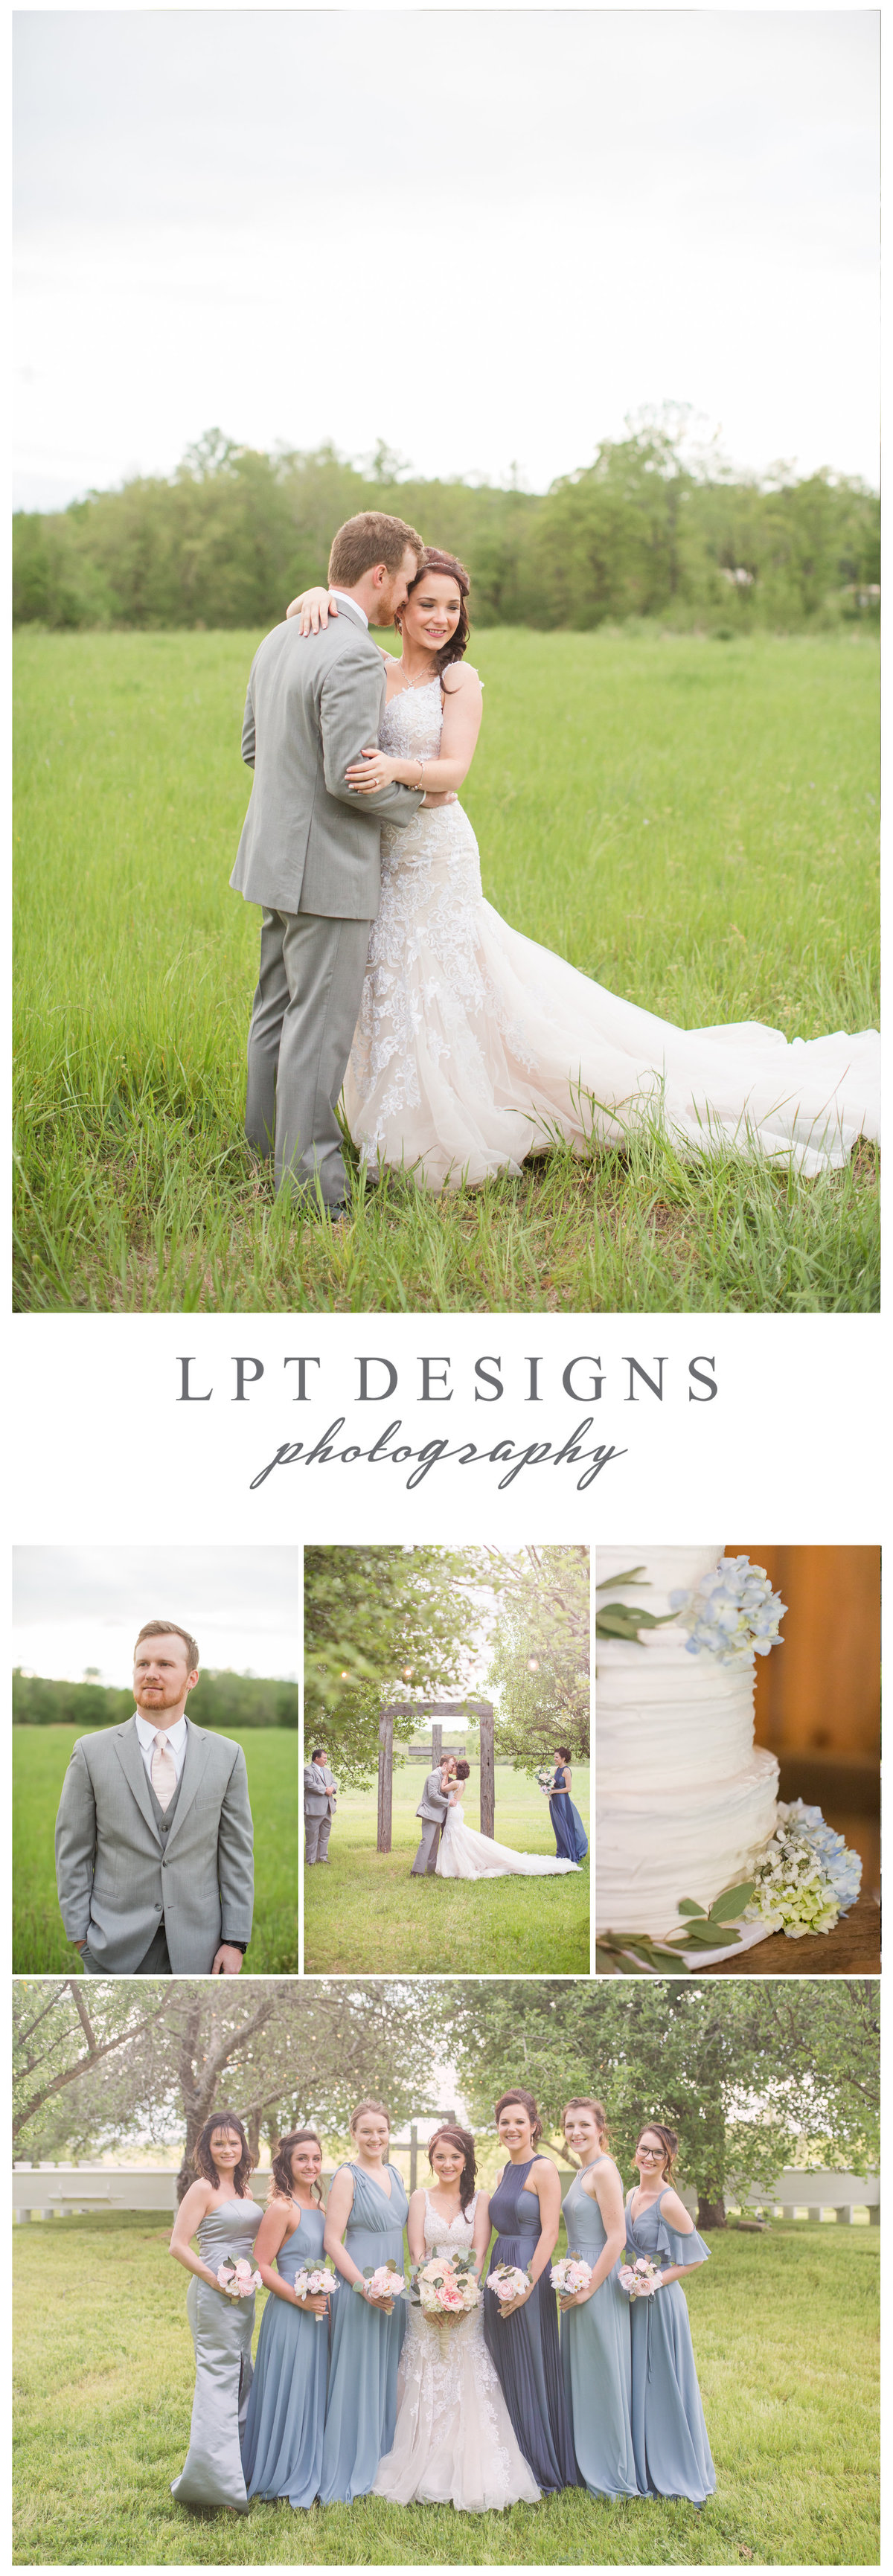 lpt_designs_photography_lydia_thrift_gadsden_alabama_fine_art_wedding_photographer_mk_1